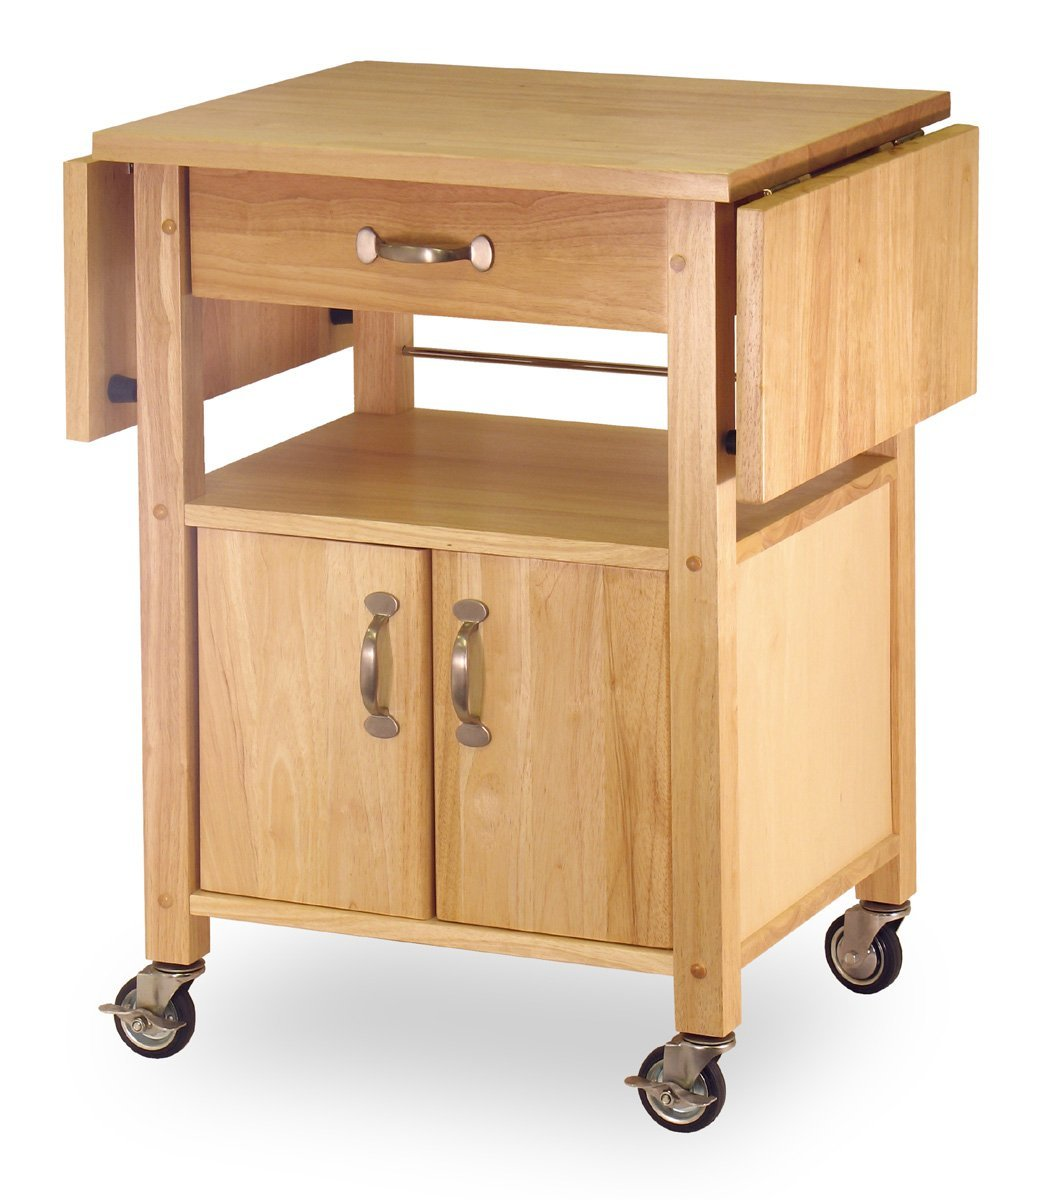 amazon com   winsome wood drop leaf kitchen cart   bar  u0026 serving carts  rh   amazon com